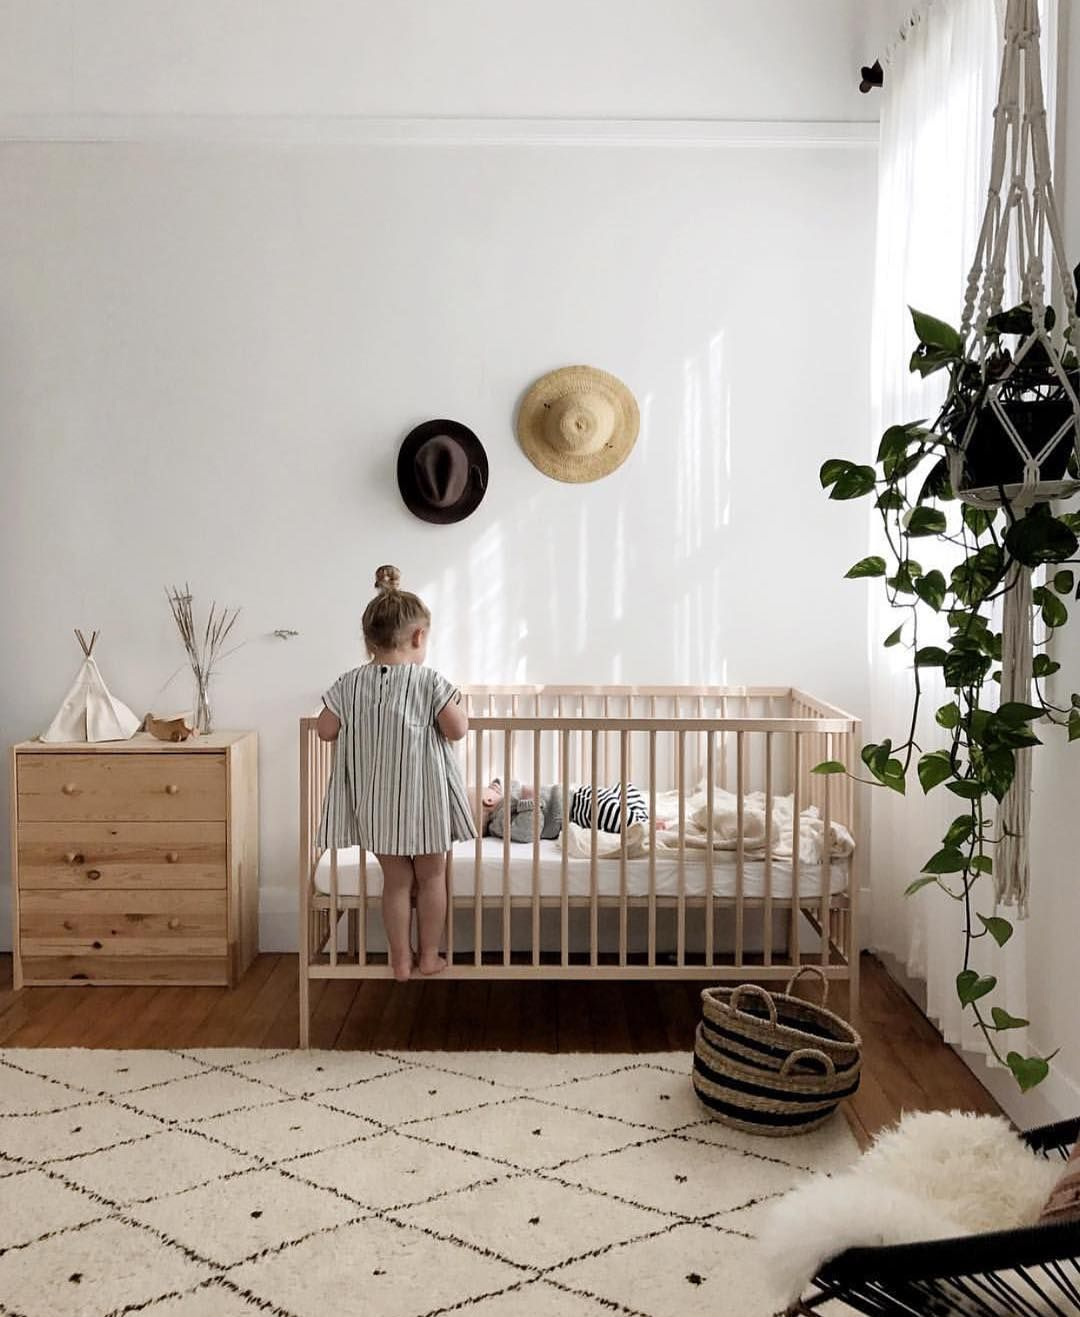 Natural Baby Nursery Design Reveal: Nursery & Kids Room Interior Design Blog